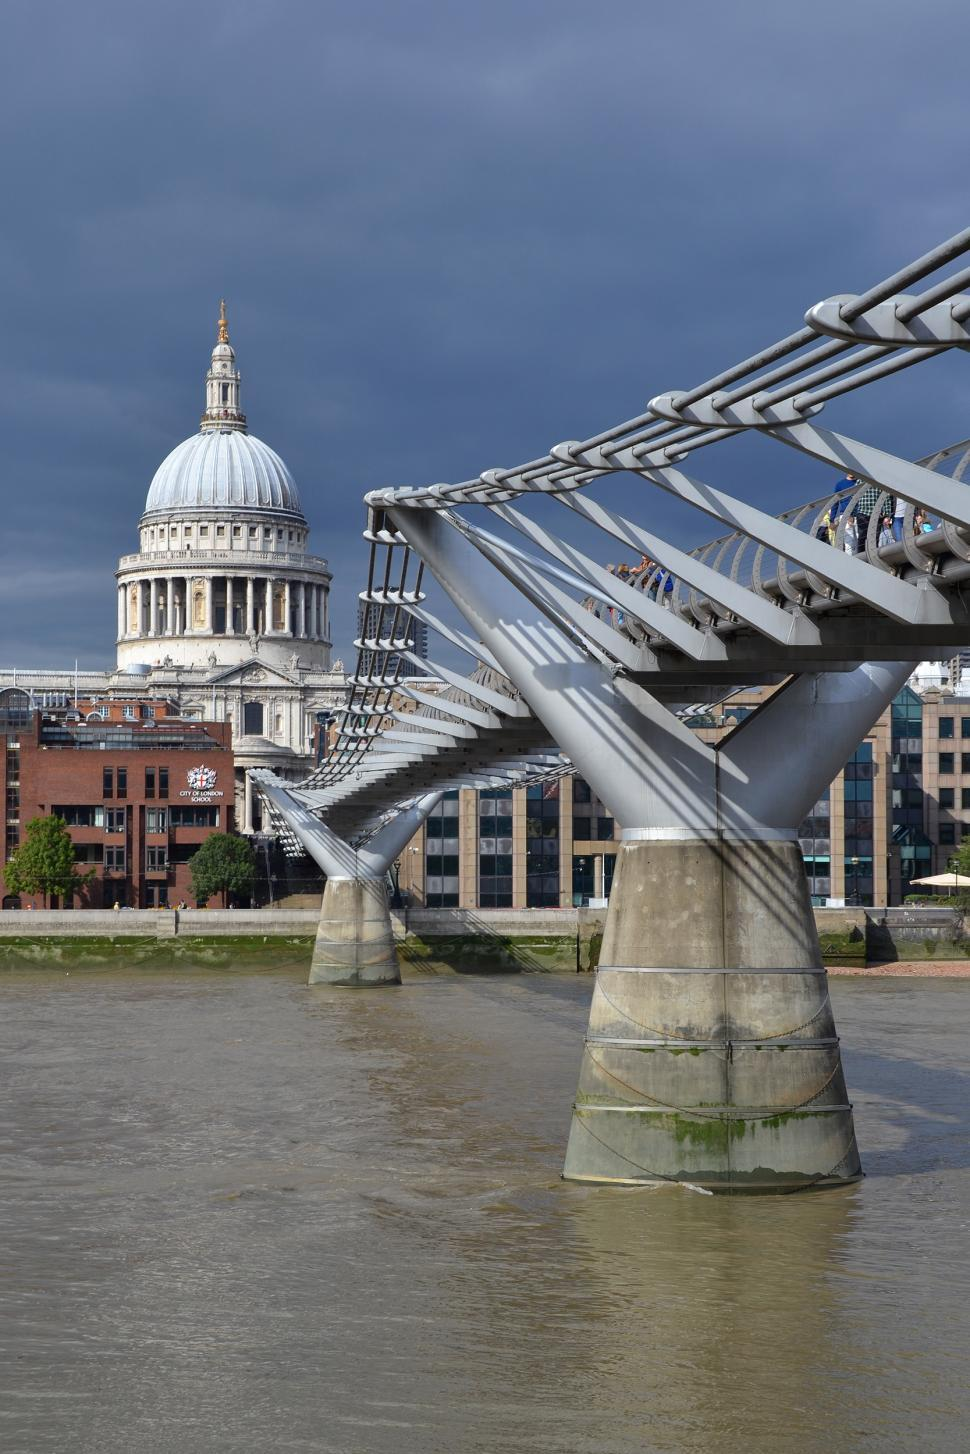 Download Free Stock HD Photo of The Millennium bridge Online